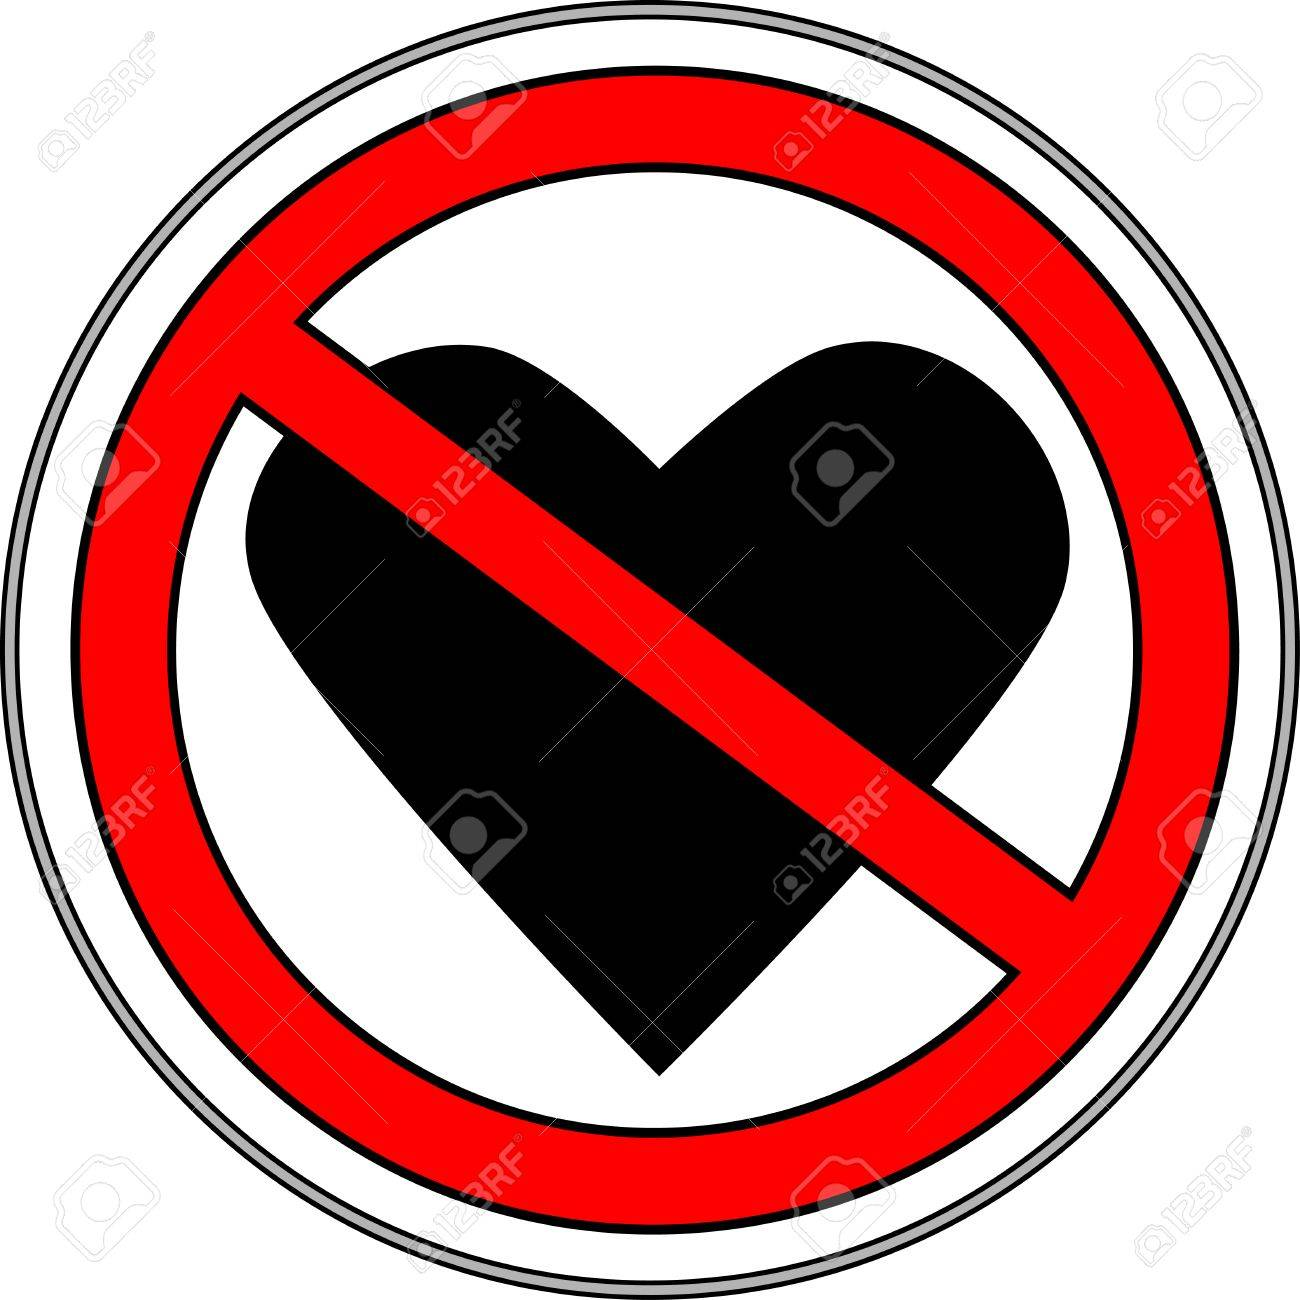 Sign, symbol, indicating a failure of forbidden love.